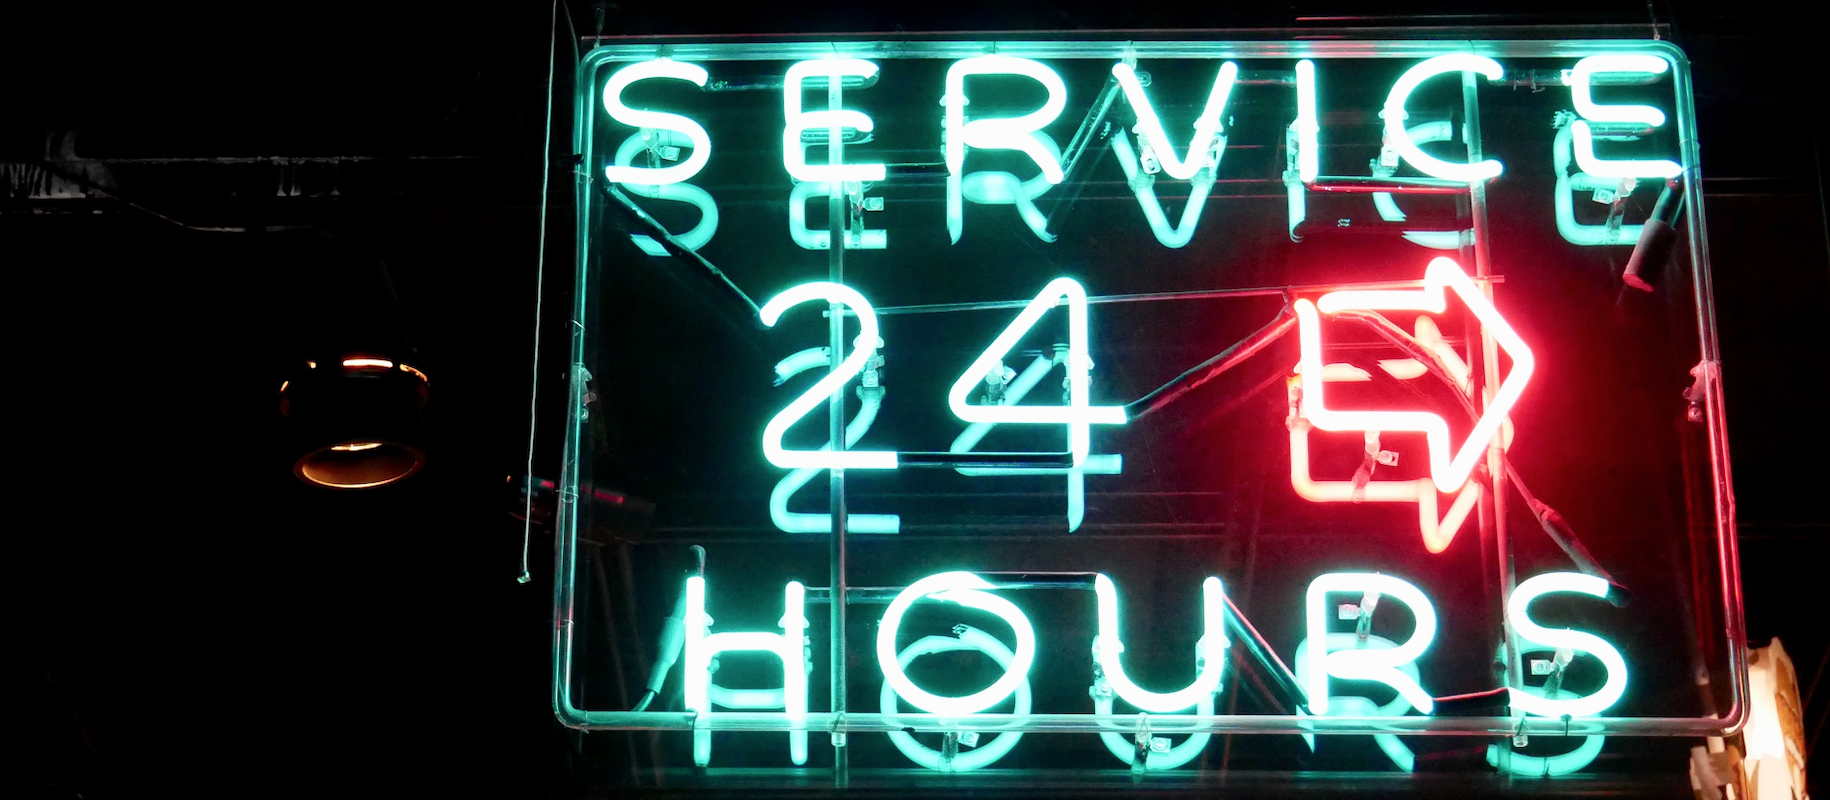 neon sign saying service 24 hours